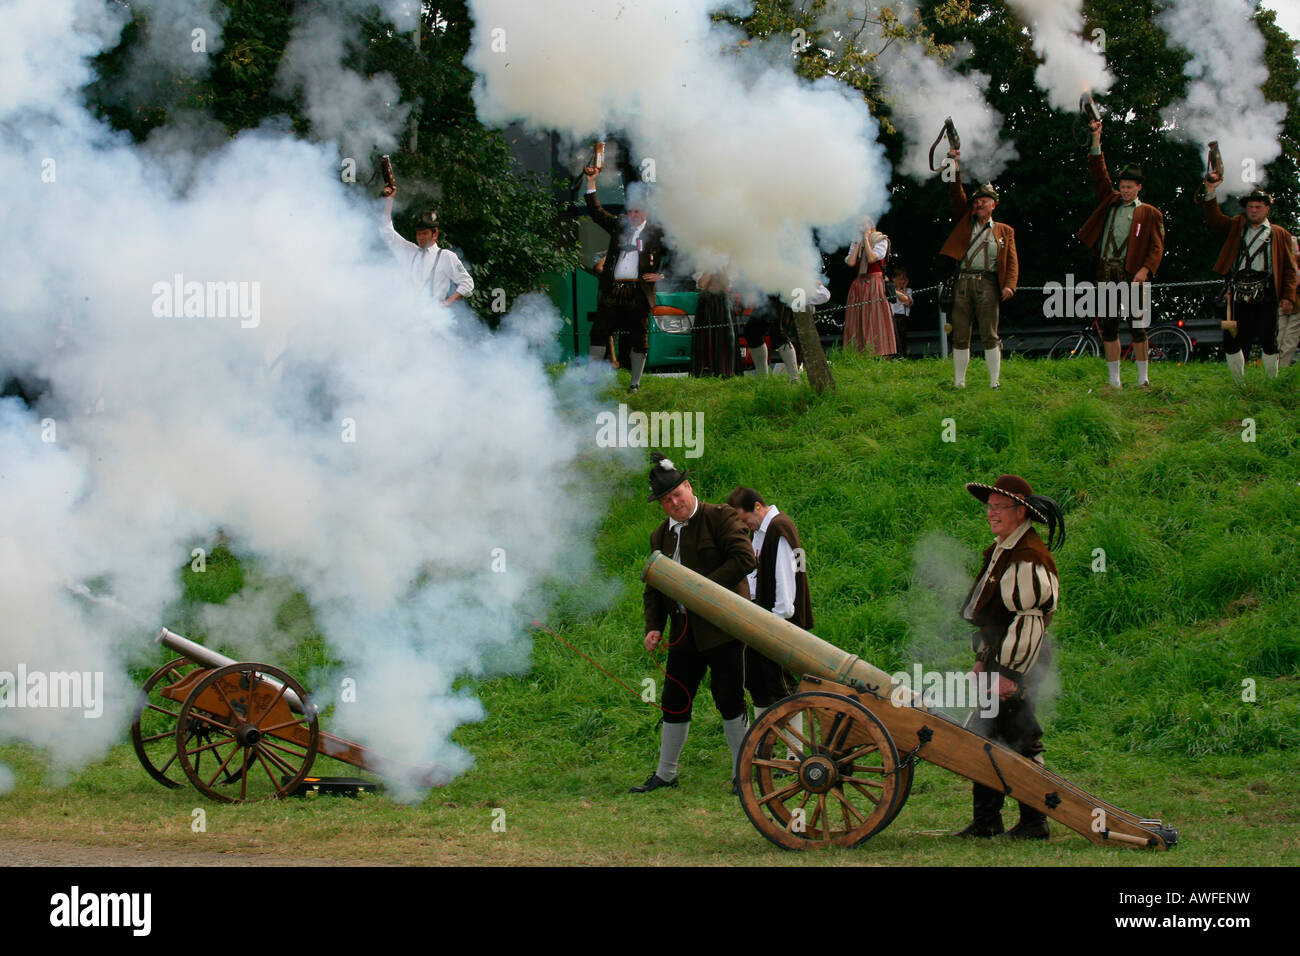 Gun salutes being fired from cannons at a folk festival in Muehldorf am Inn, Upper Bavaria, Bavaria, Germany, Europe Stock Photo